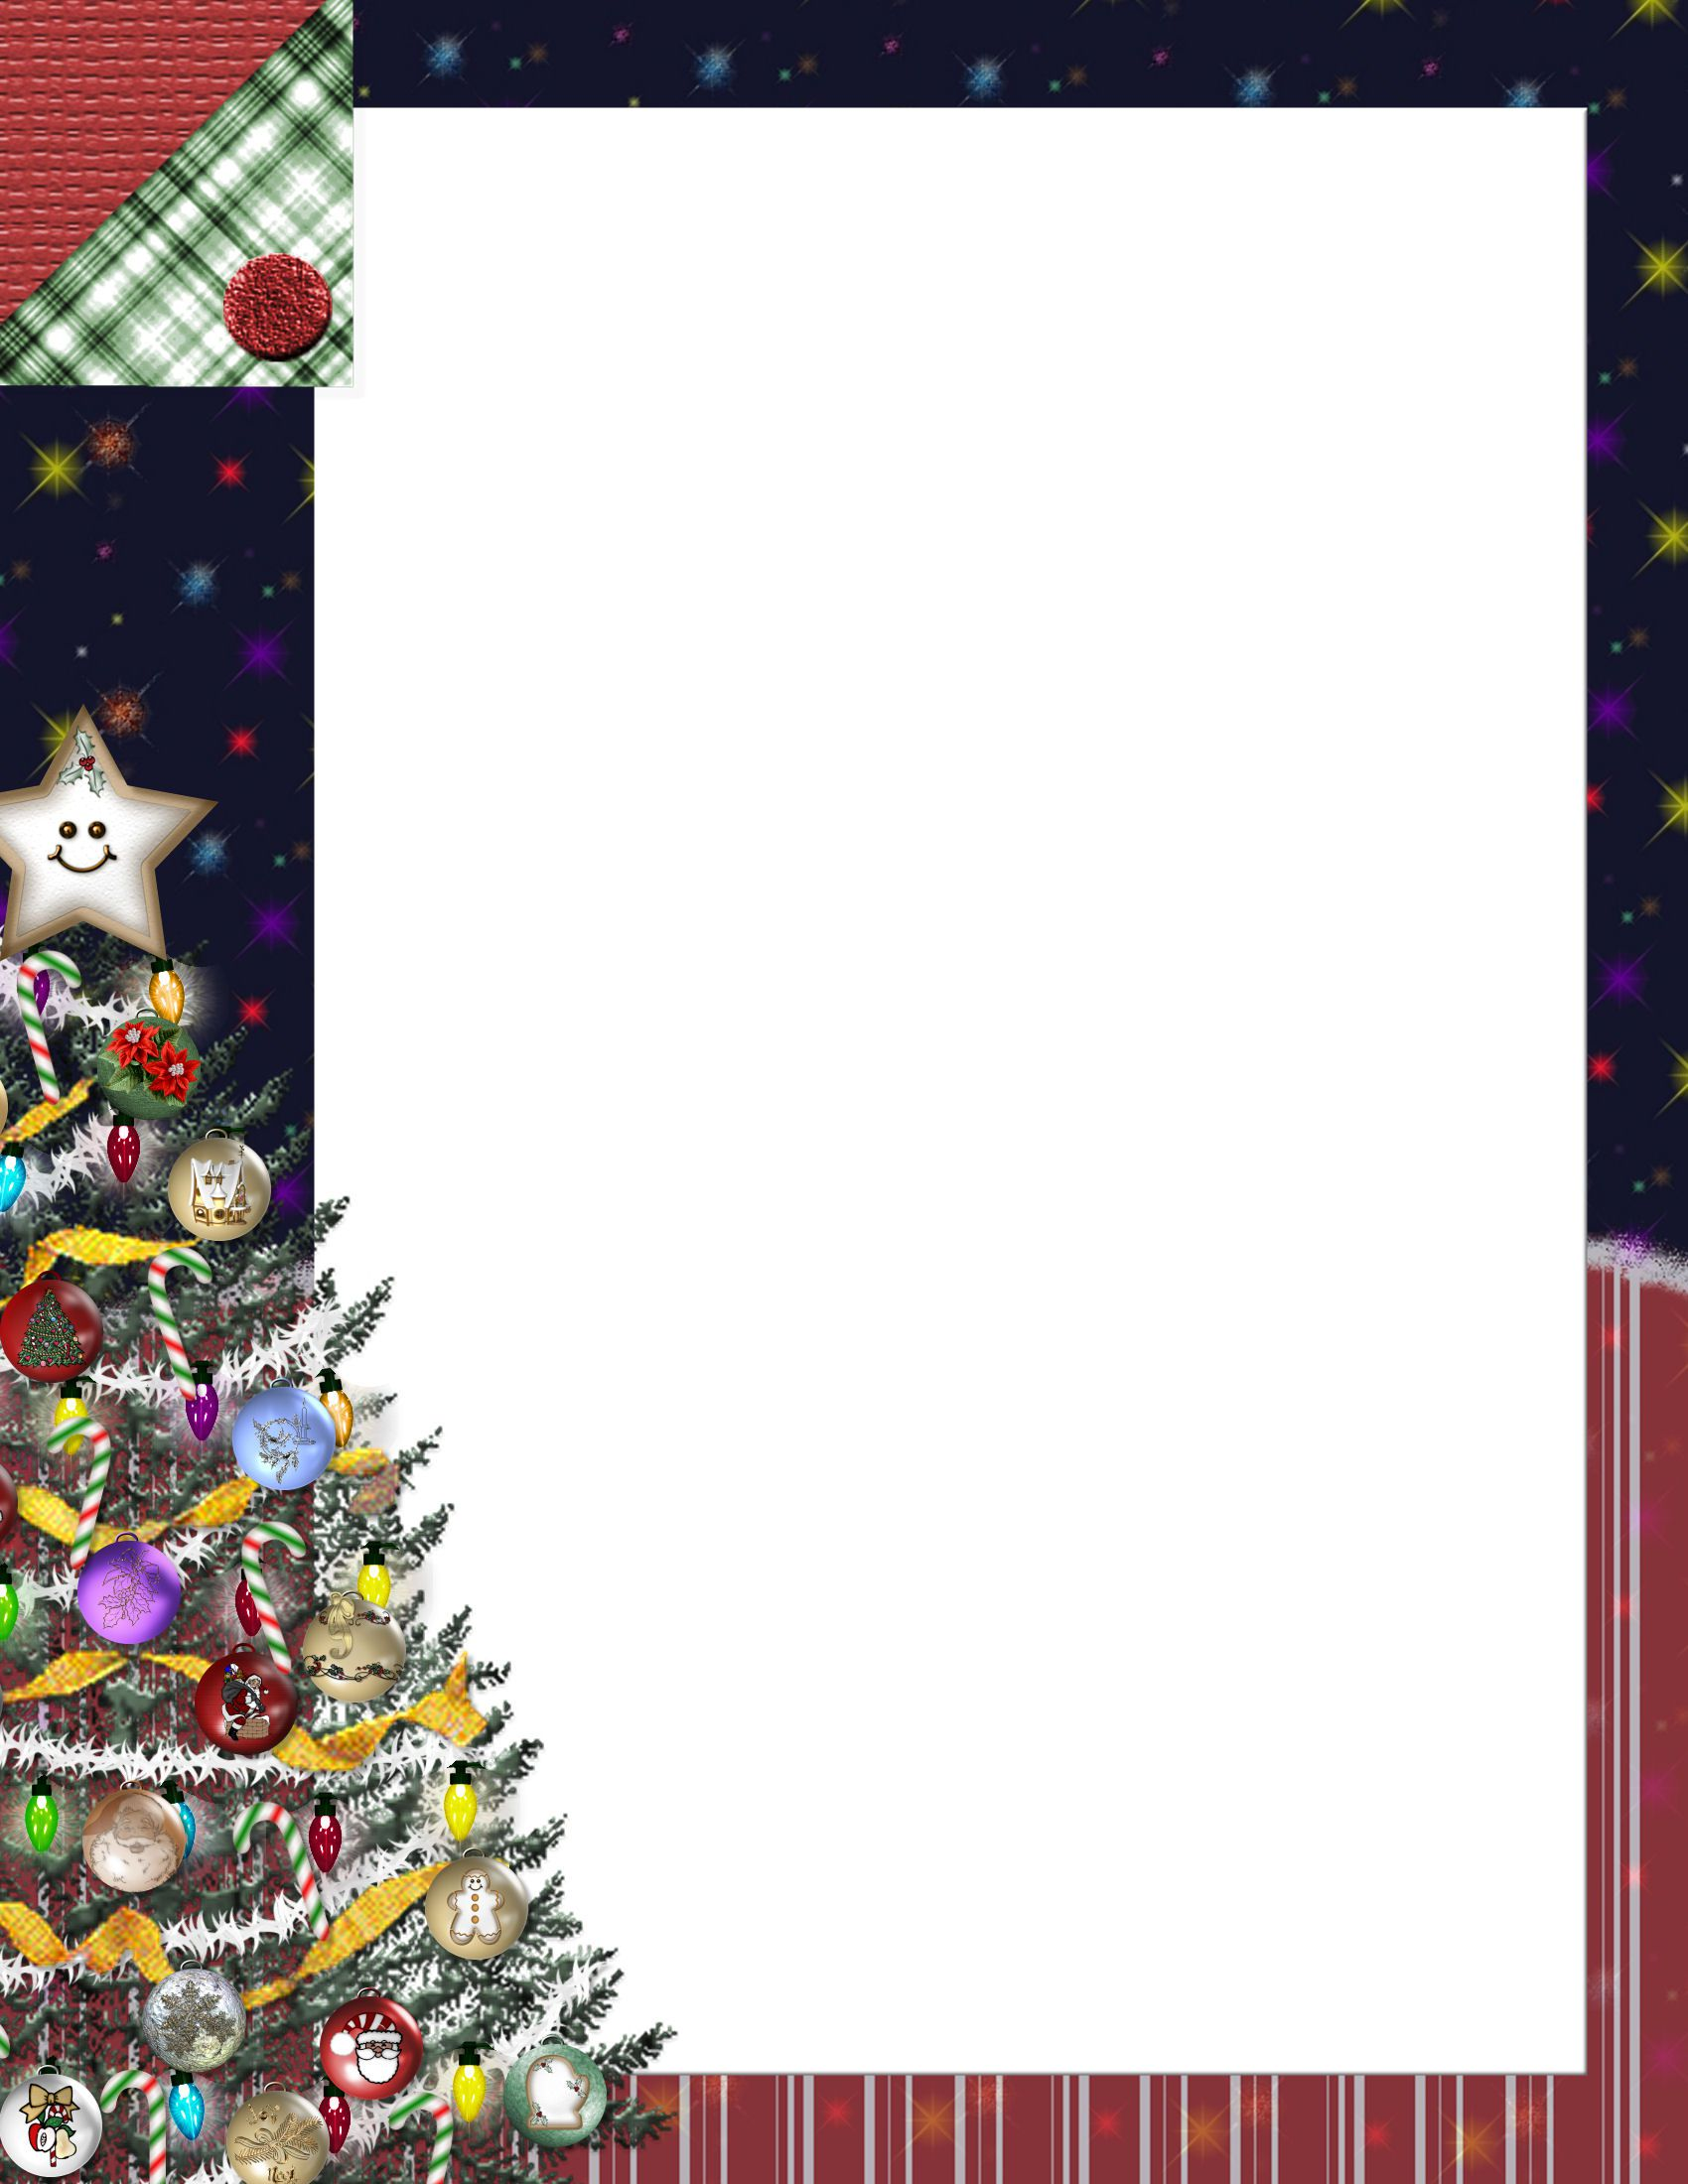 006 Fantastic Free Christma Template For Word Example  Holiday Party Invitation Recipe Card Printable StationeryFull